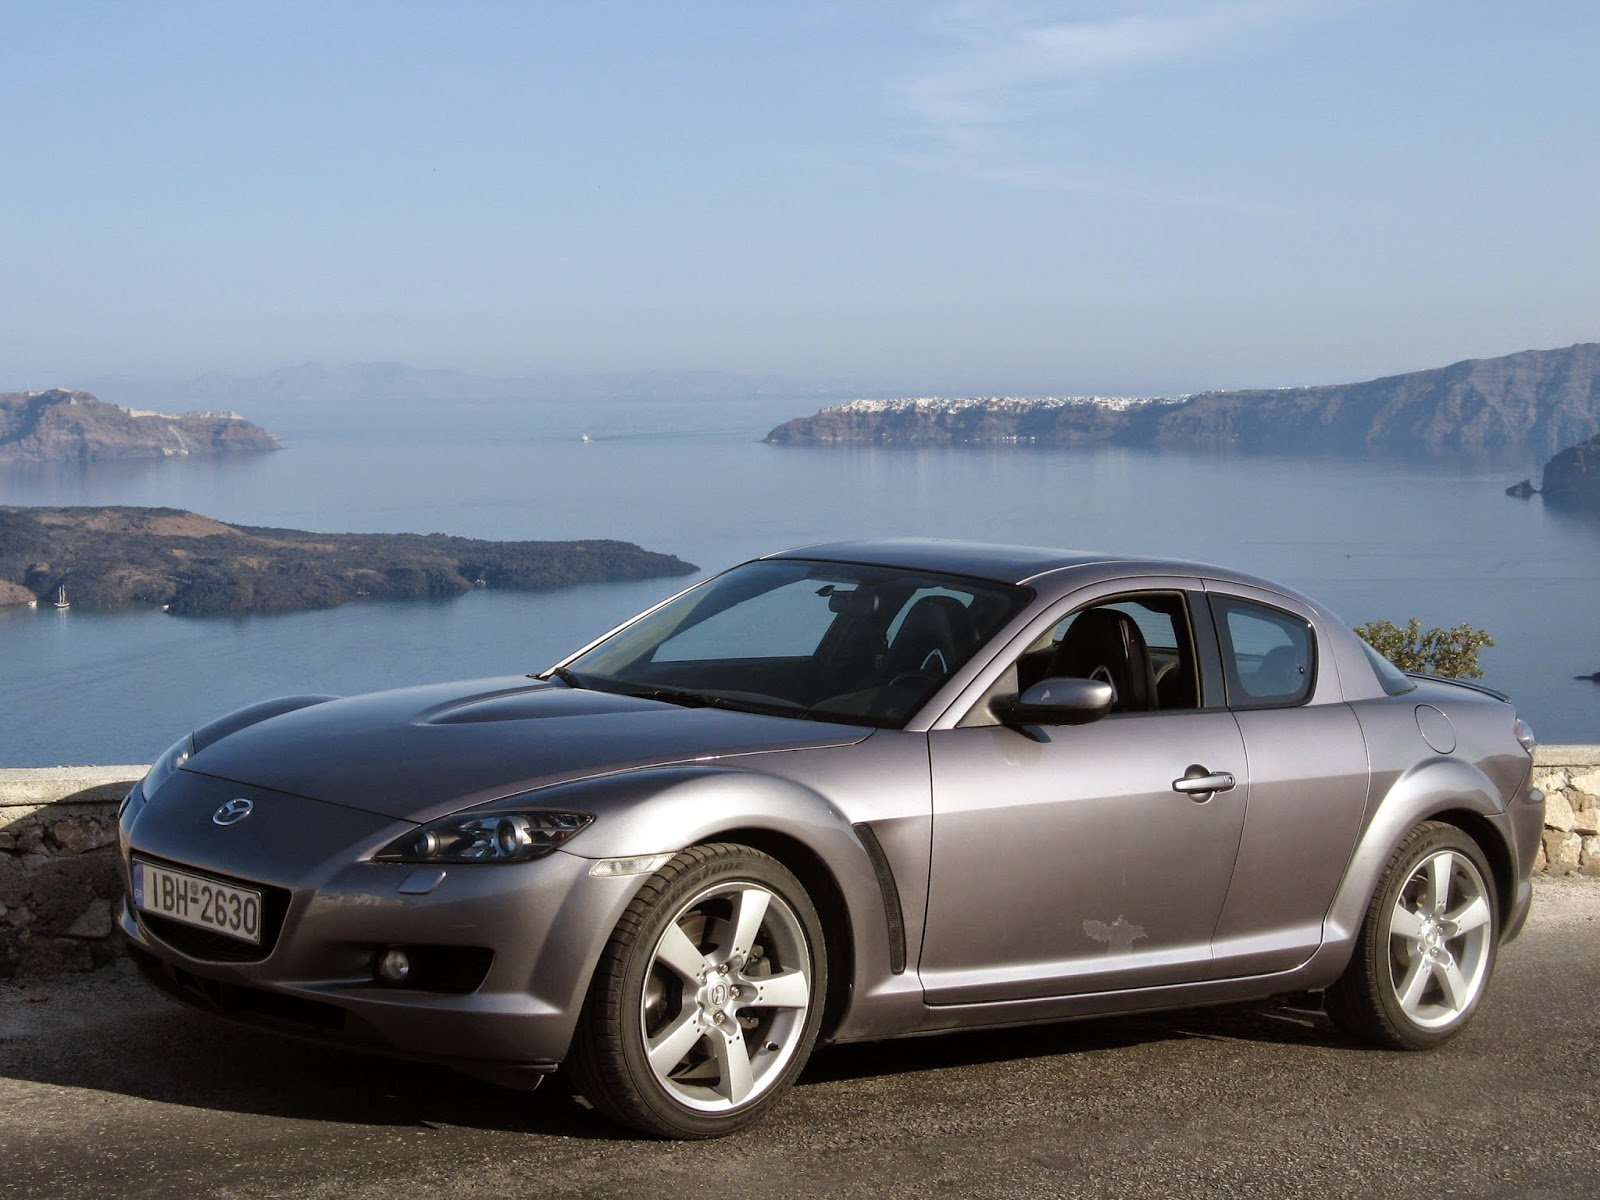 mazda rx 8 challenge 192hp my 2006 test drive autoholix. Black Bedroom Furniture Sets. Home Design Ideas